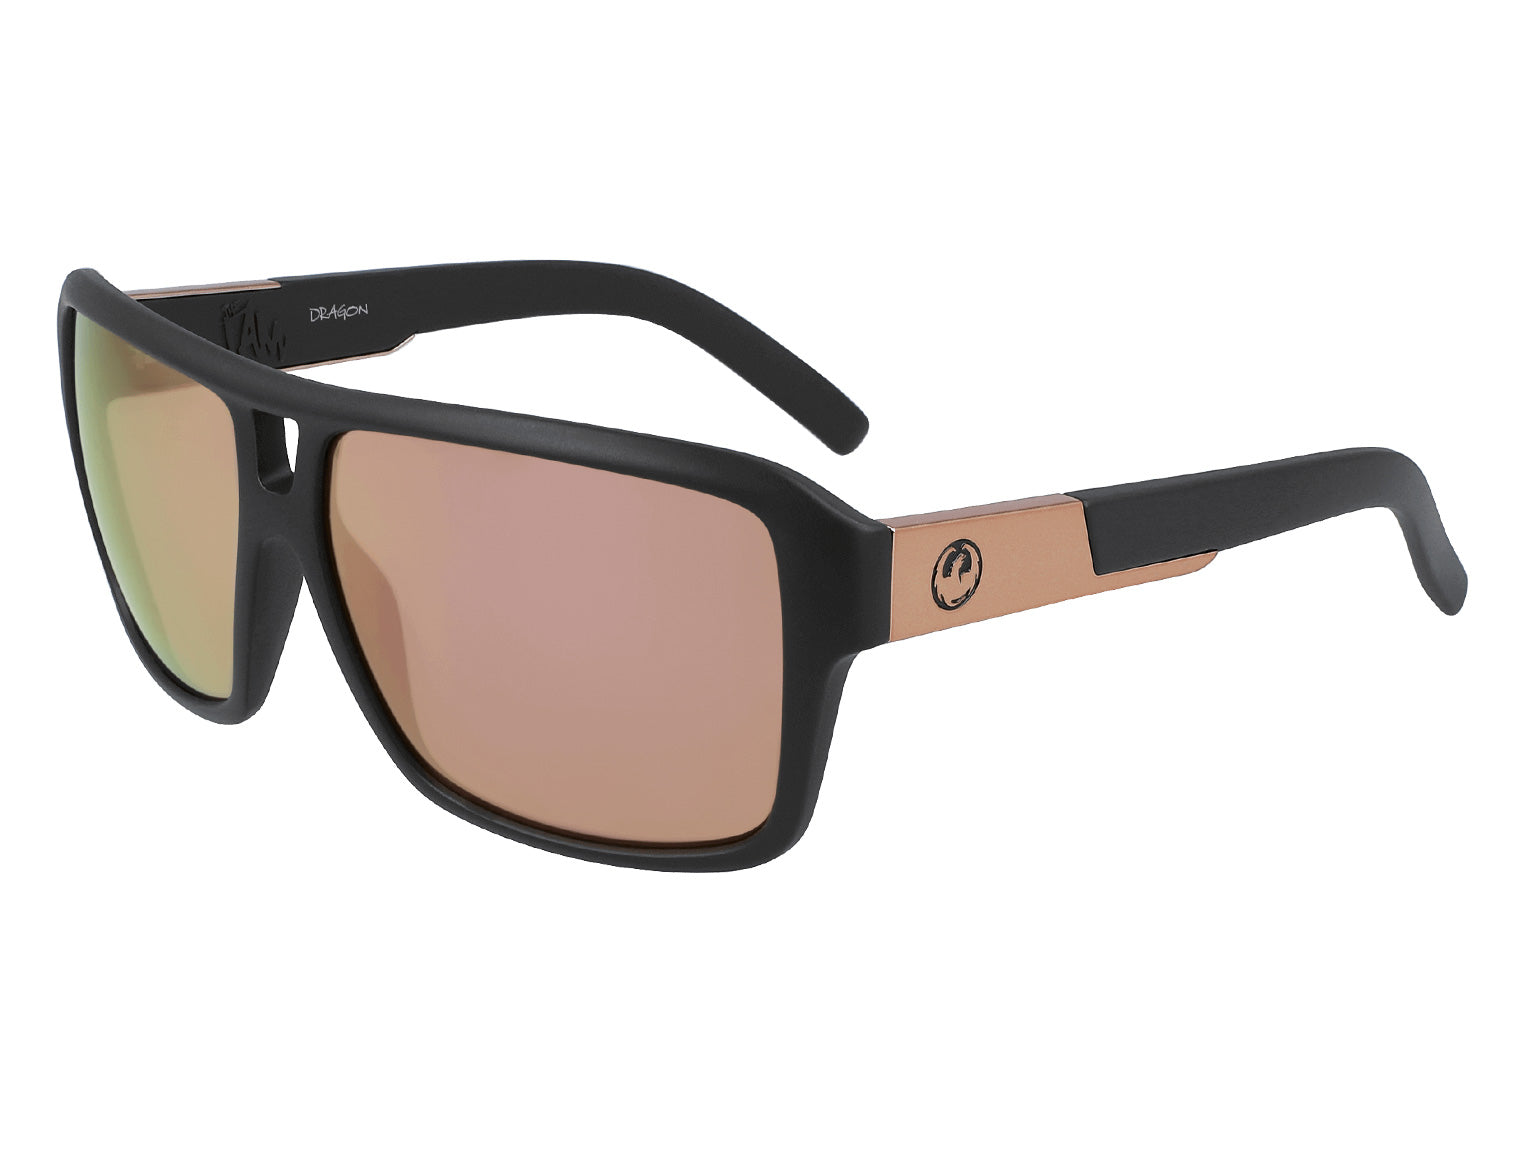 THE JAM - Matte Black with Lumalens Rose Gold Ionized Lens